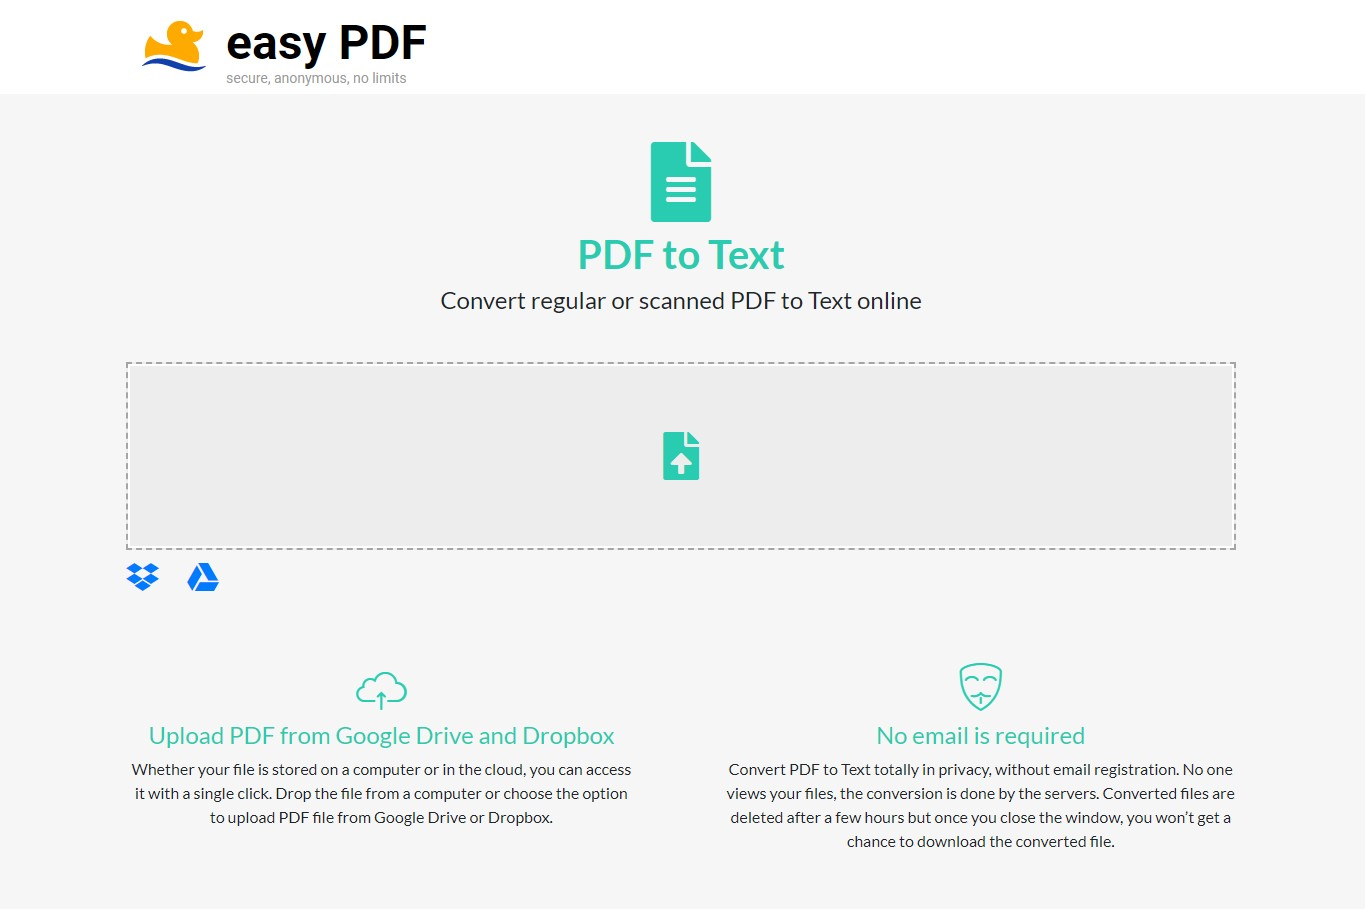 easypdf pdf to text converter